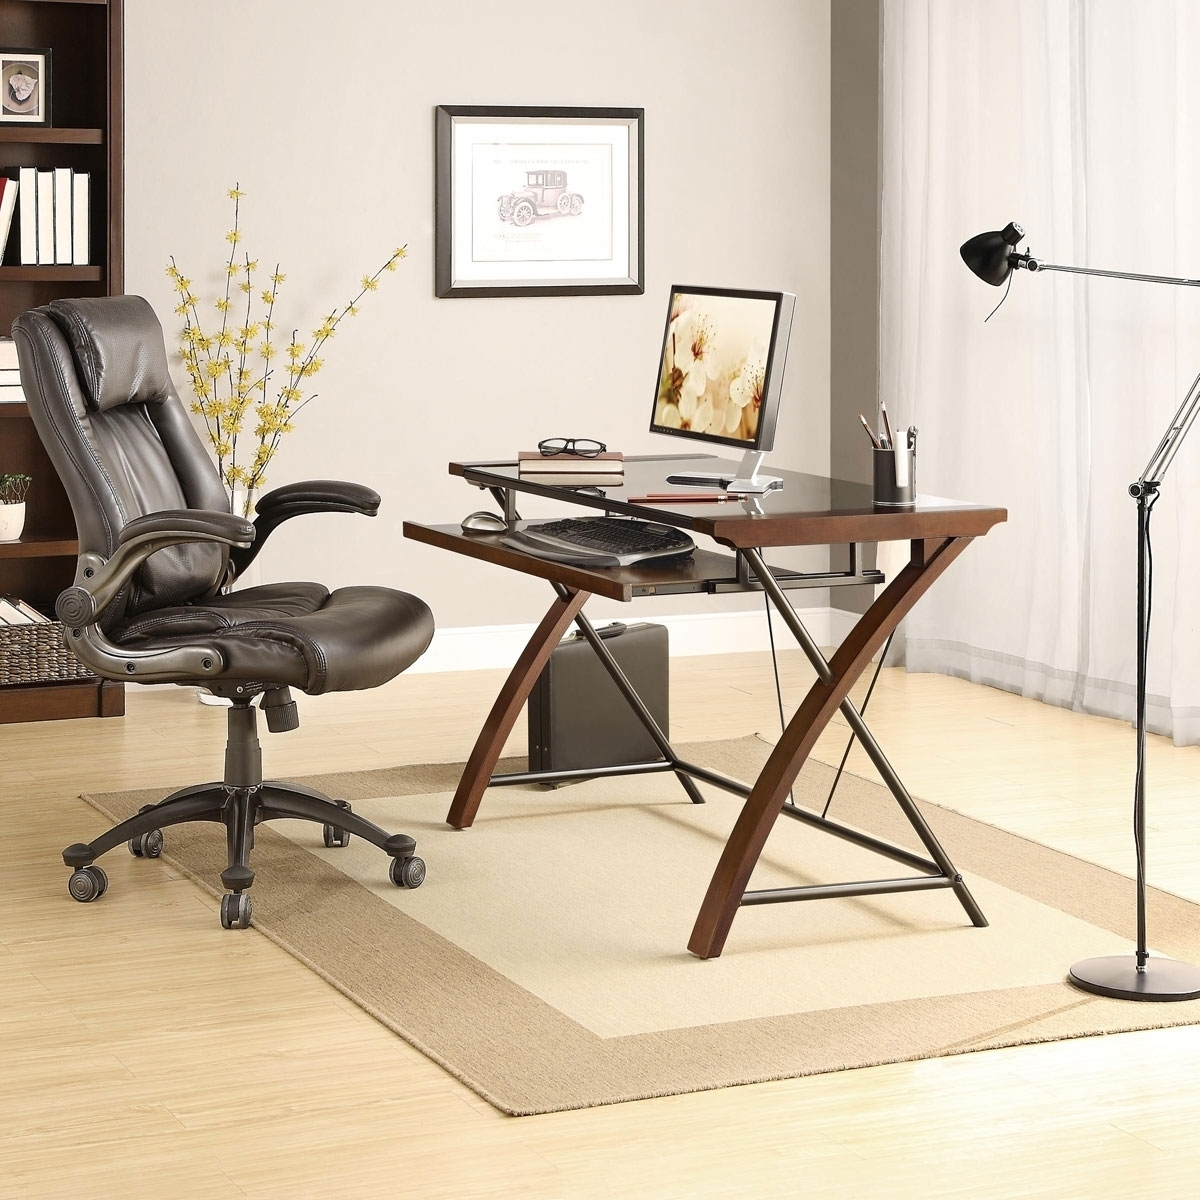 Costco Office Chair Ideas — New Home Design Within Newest Computer Desks At Costco (View 5 of 20)